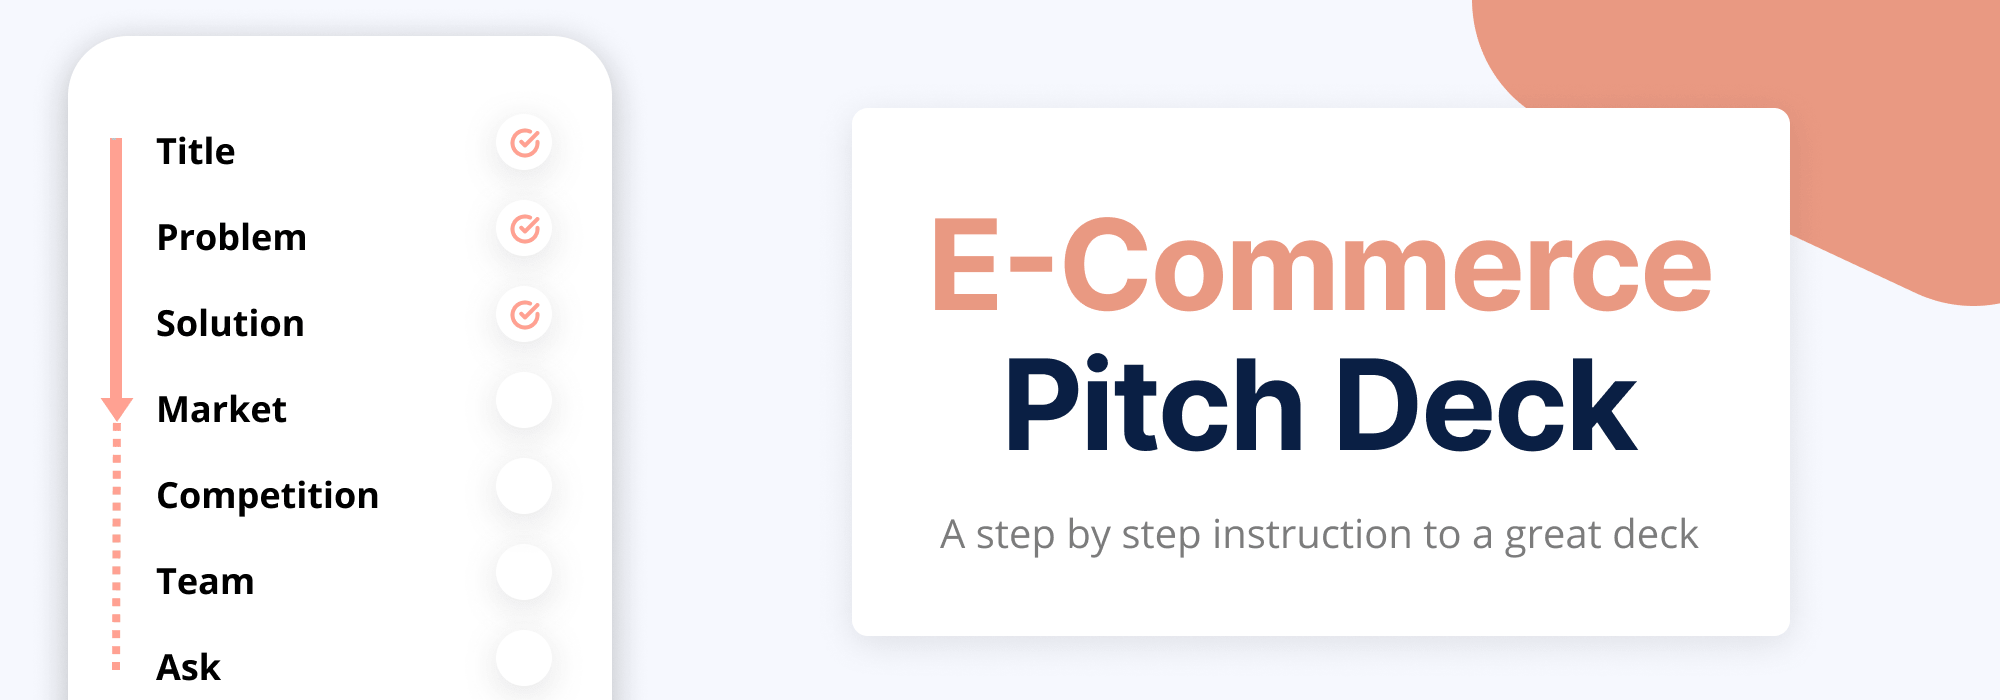 How to Create an E-Commerce Pitch Deck